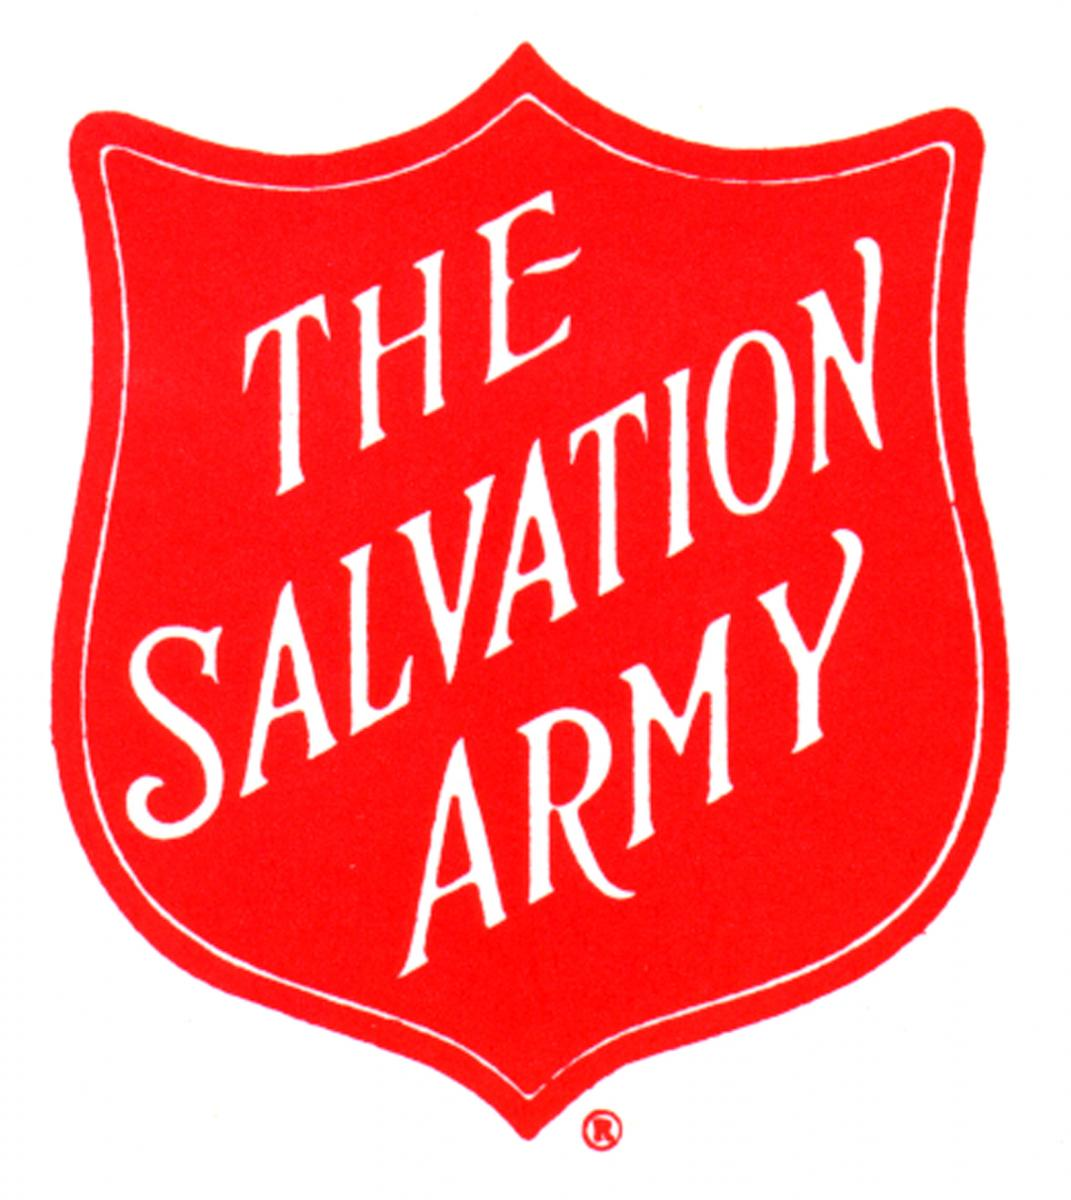 Salvation army clipart free png freeuse library The Salvation Army | United Way of Southeast Mississippi png freeuse library